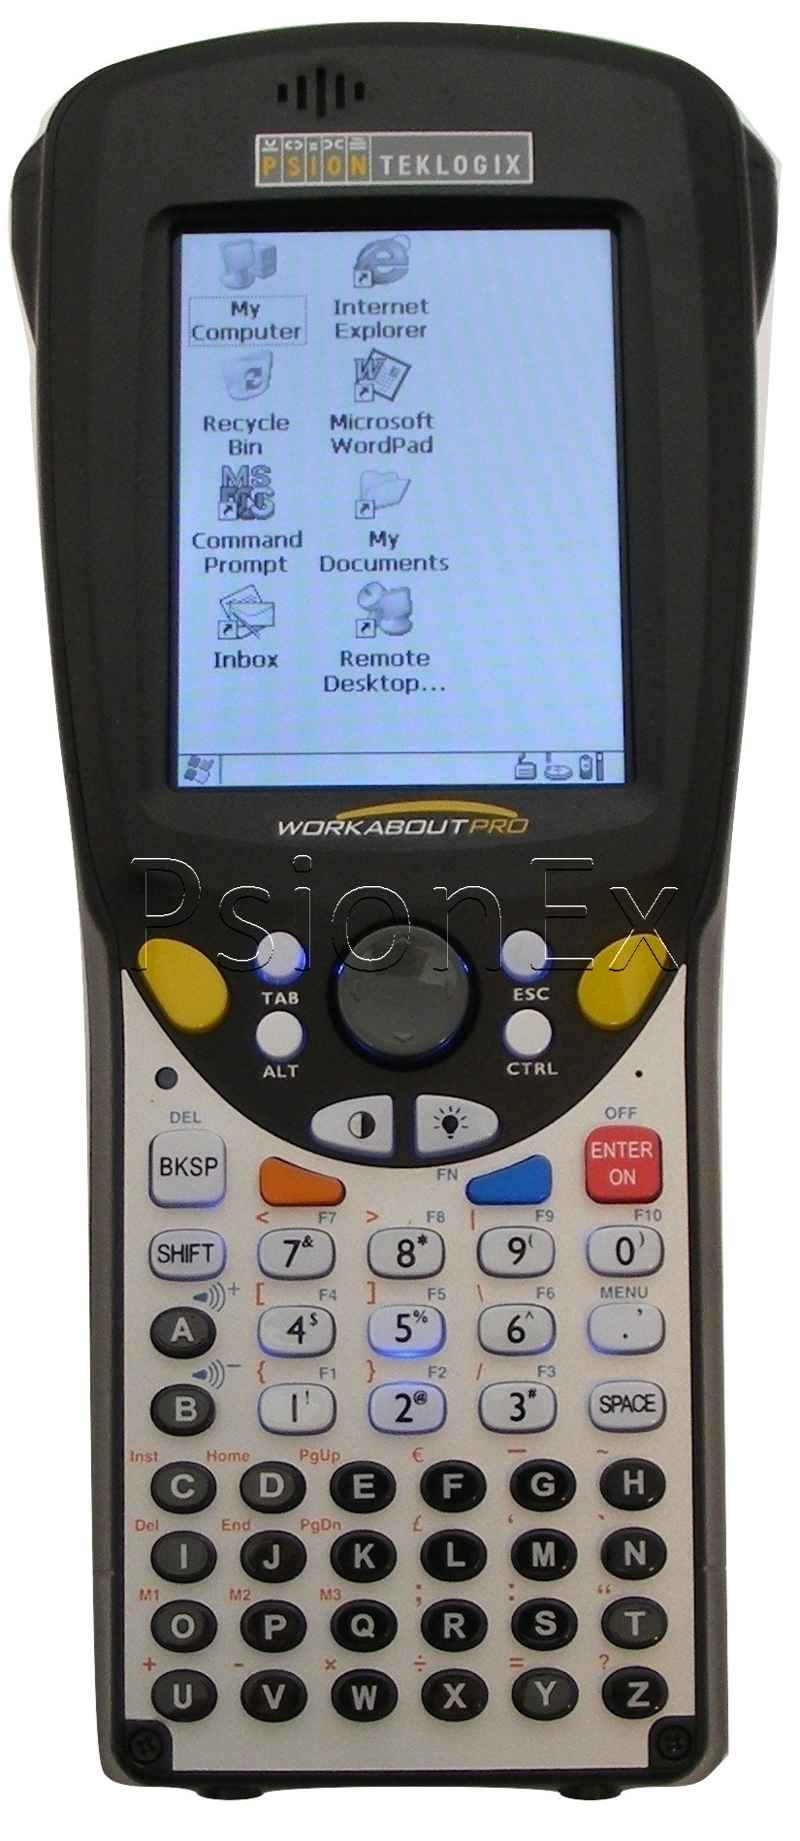 Workabout Pro G1 mono, long,  CE 4.2, 32 MB flash, 64 MB RAM